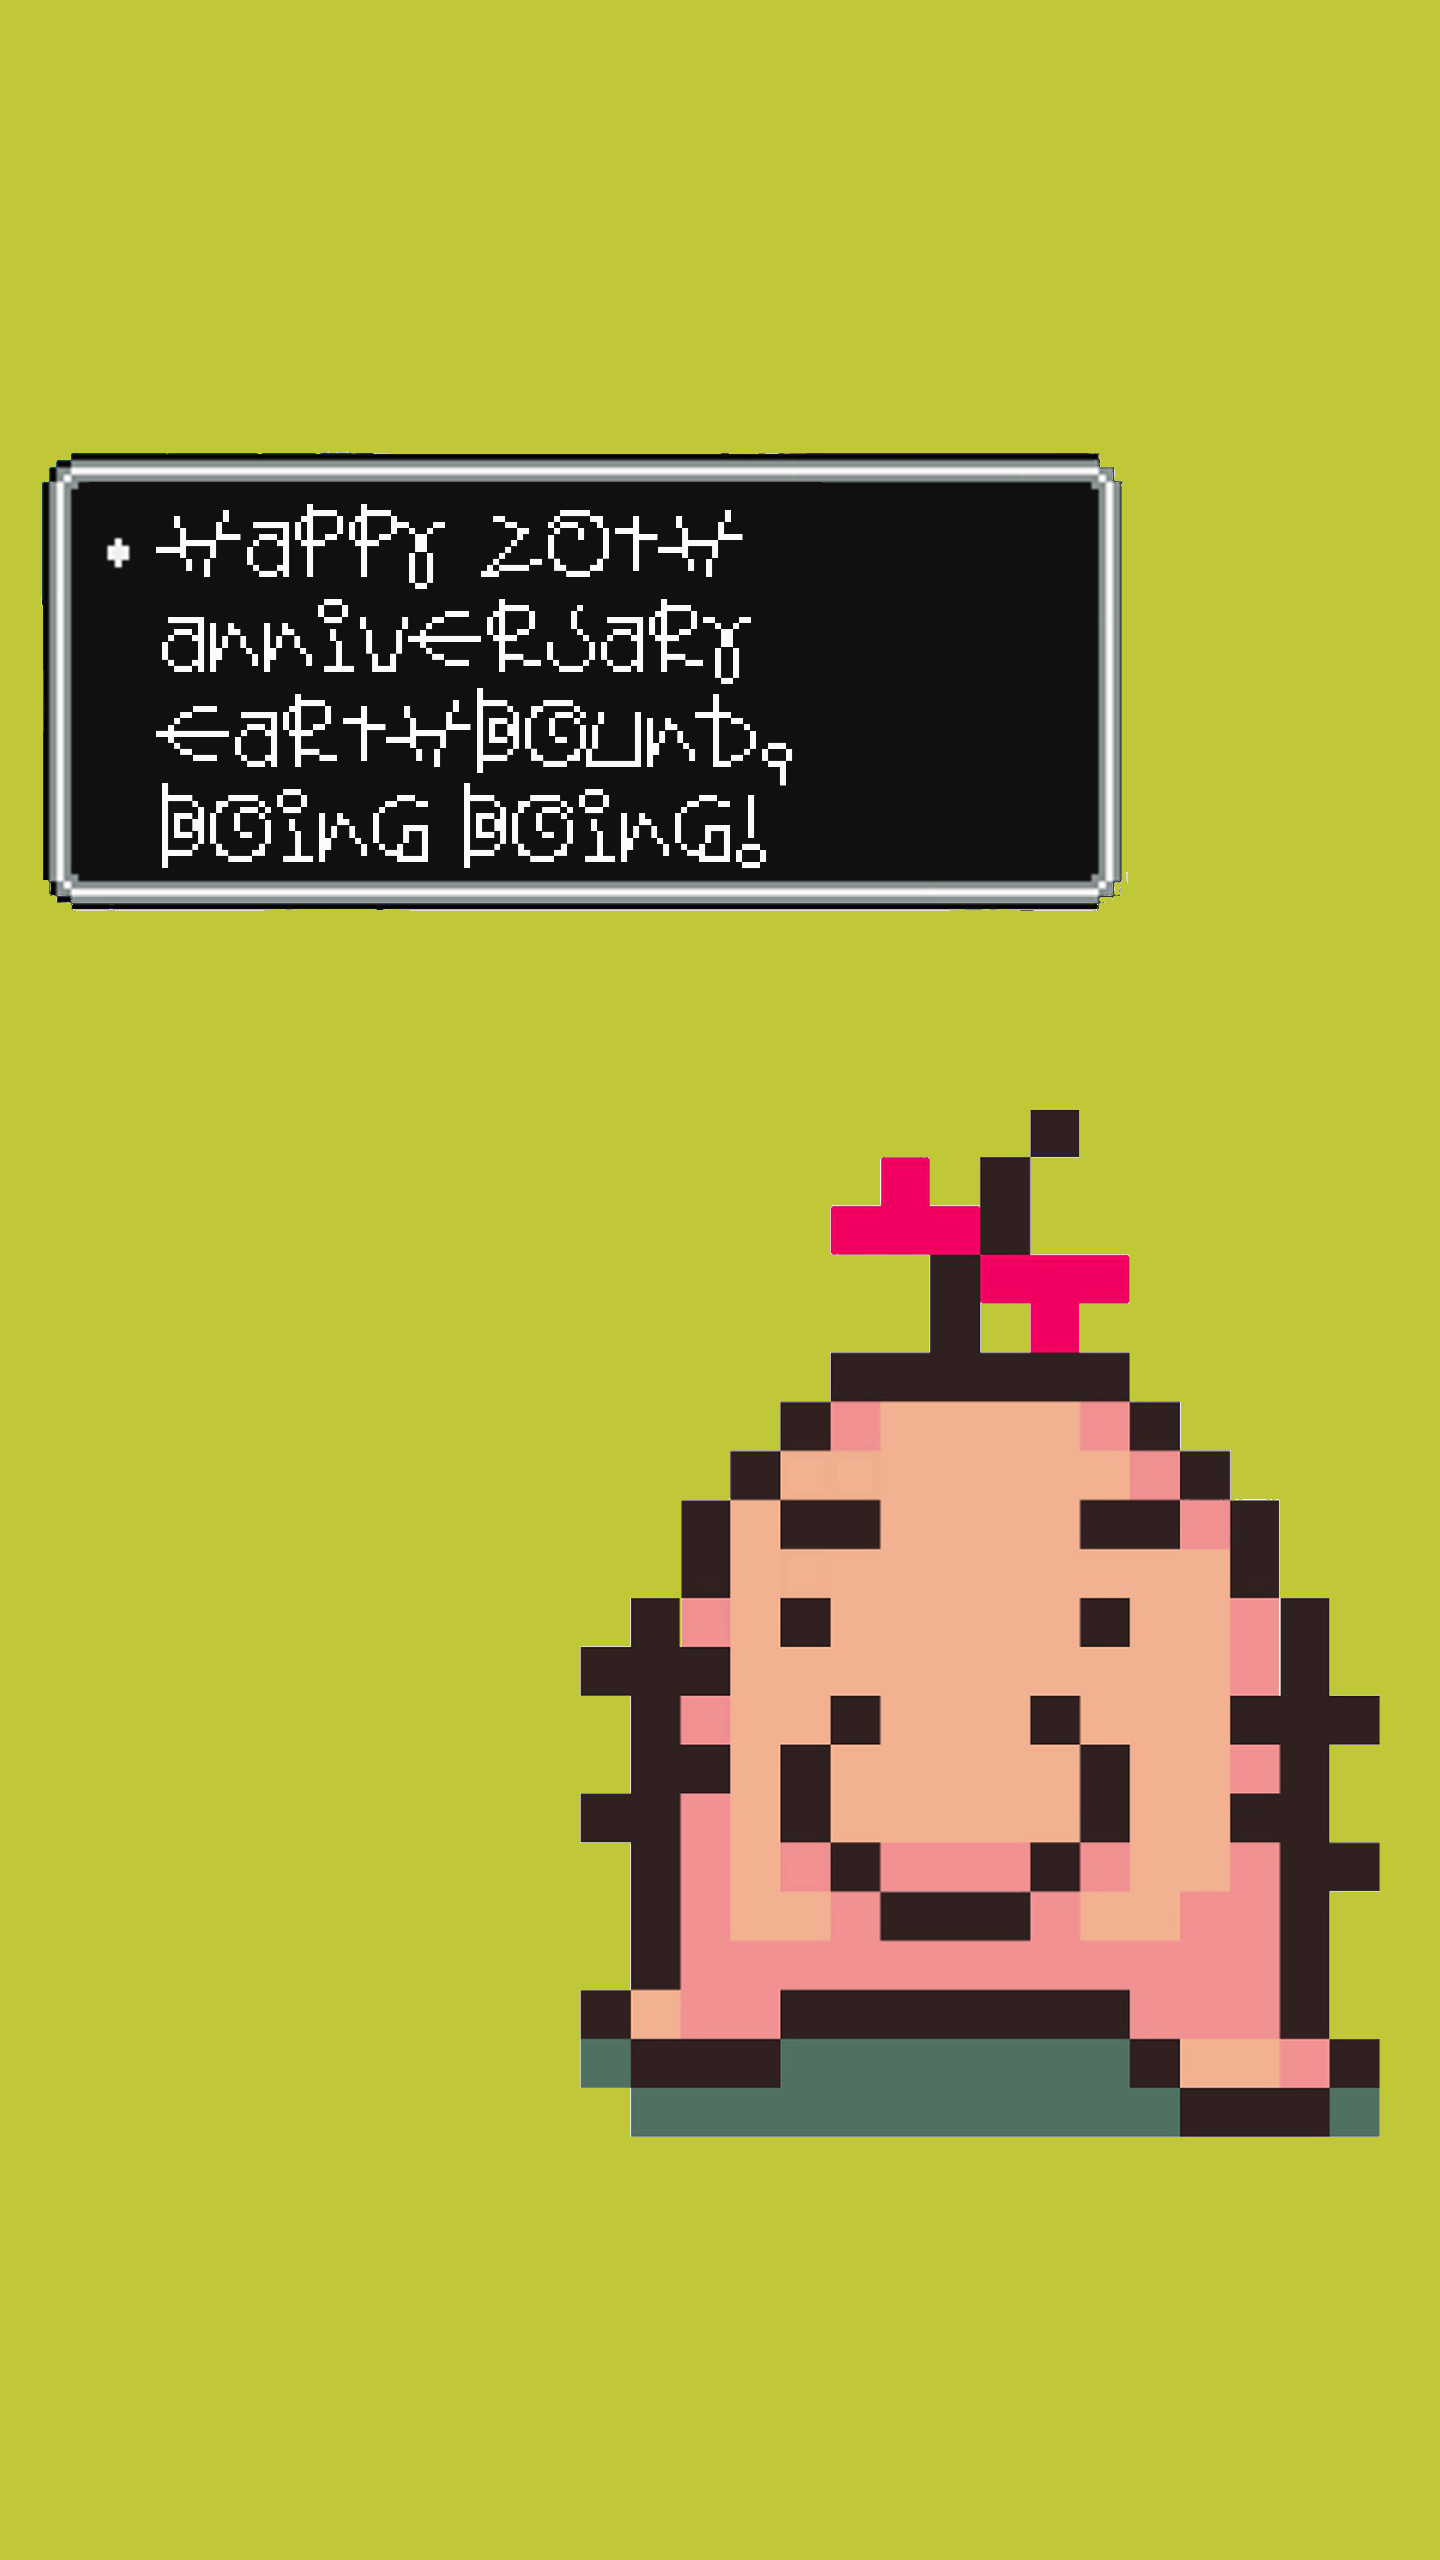 1440x2560 A small collection of Earthbound Phone Wallpapers for the 20th anniversary.